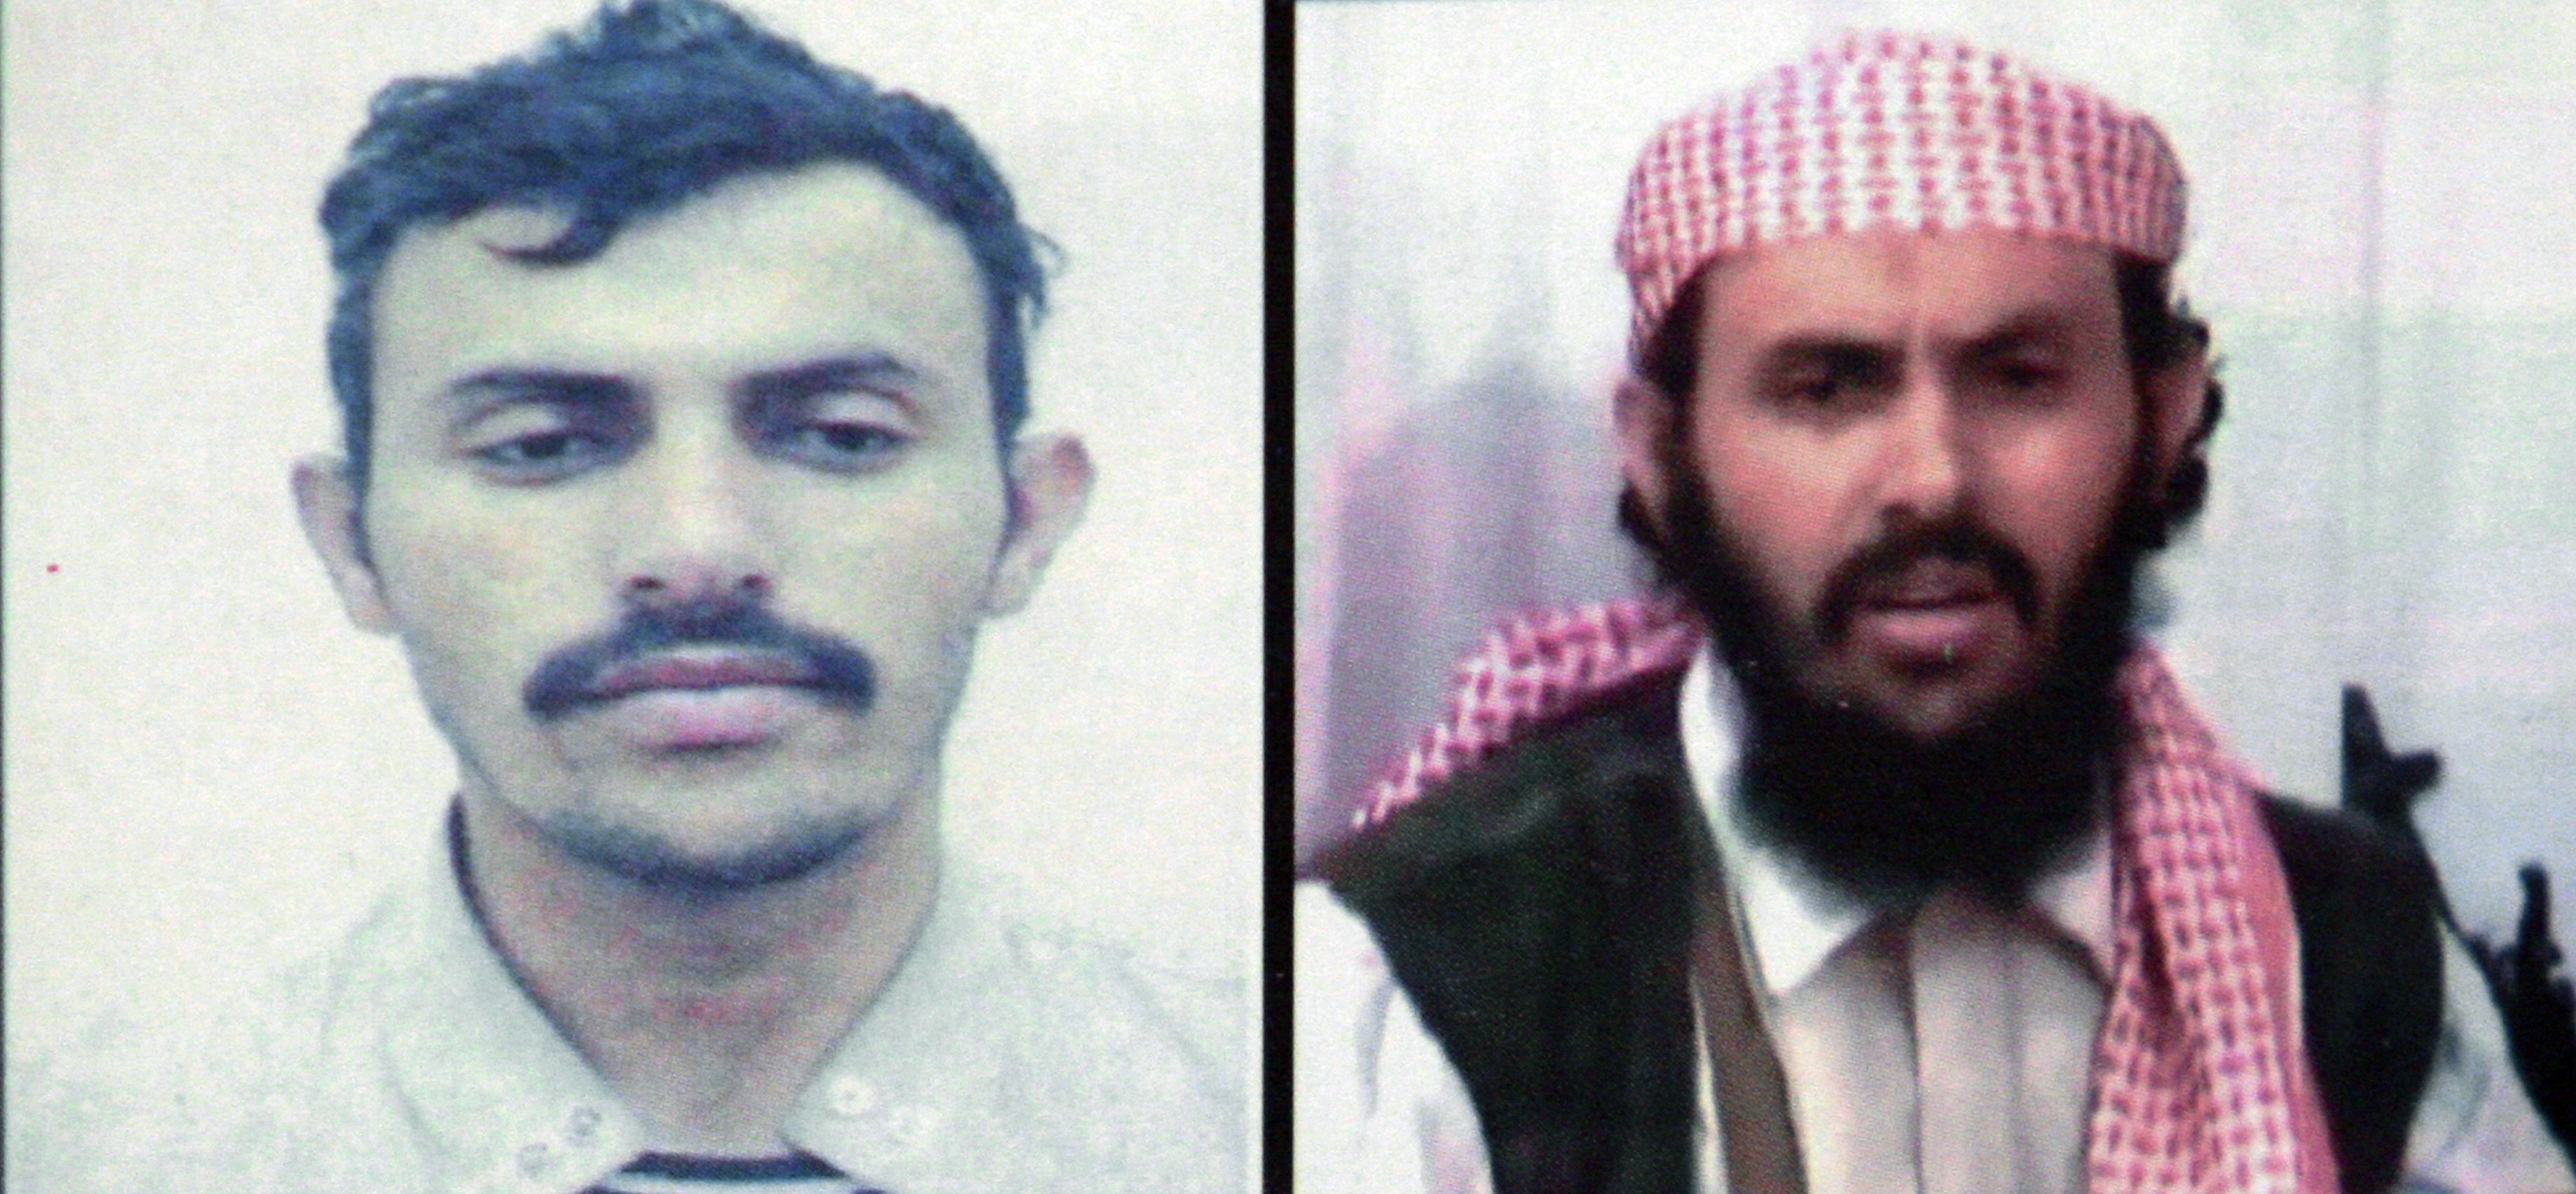 In this file photo reproduction of a combo of two pictures of a suspected military chief of al-Qaeda network in Yemen, identified as Qassem al-Rimi (or Qassim al-Rimi), shows the activist on a Yemeni interior ministry document in two different undated images. U.S. President Donald Trump confirmed on February 6, 2020 that US forces had killed the leader of jihadist group Al-Qaeda in the Arabian Peninsula in Yemen.